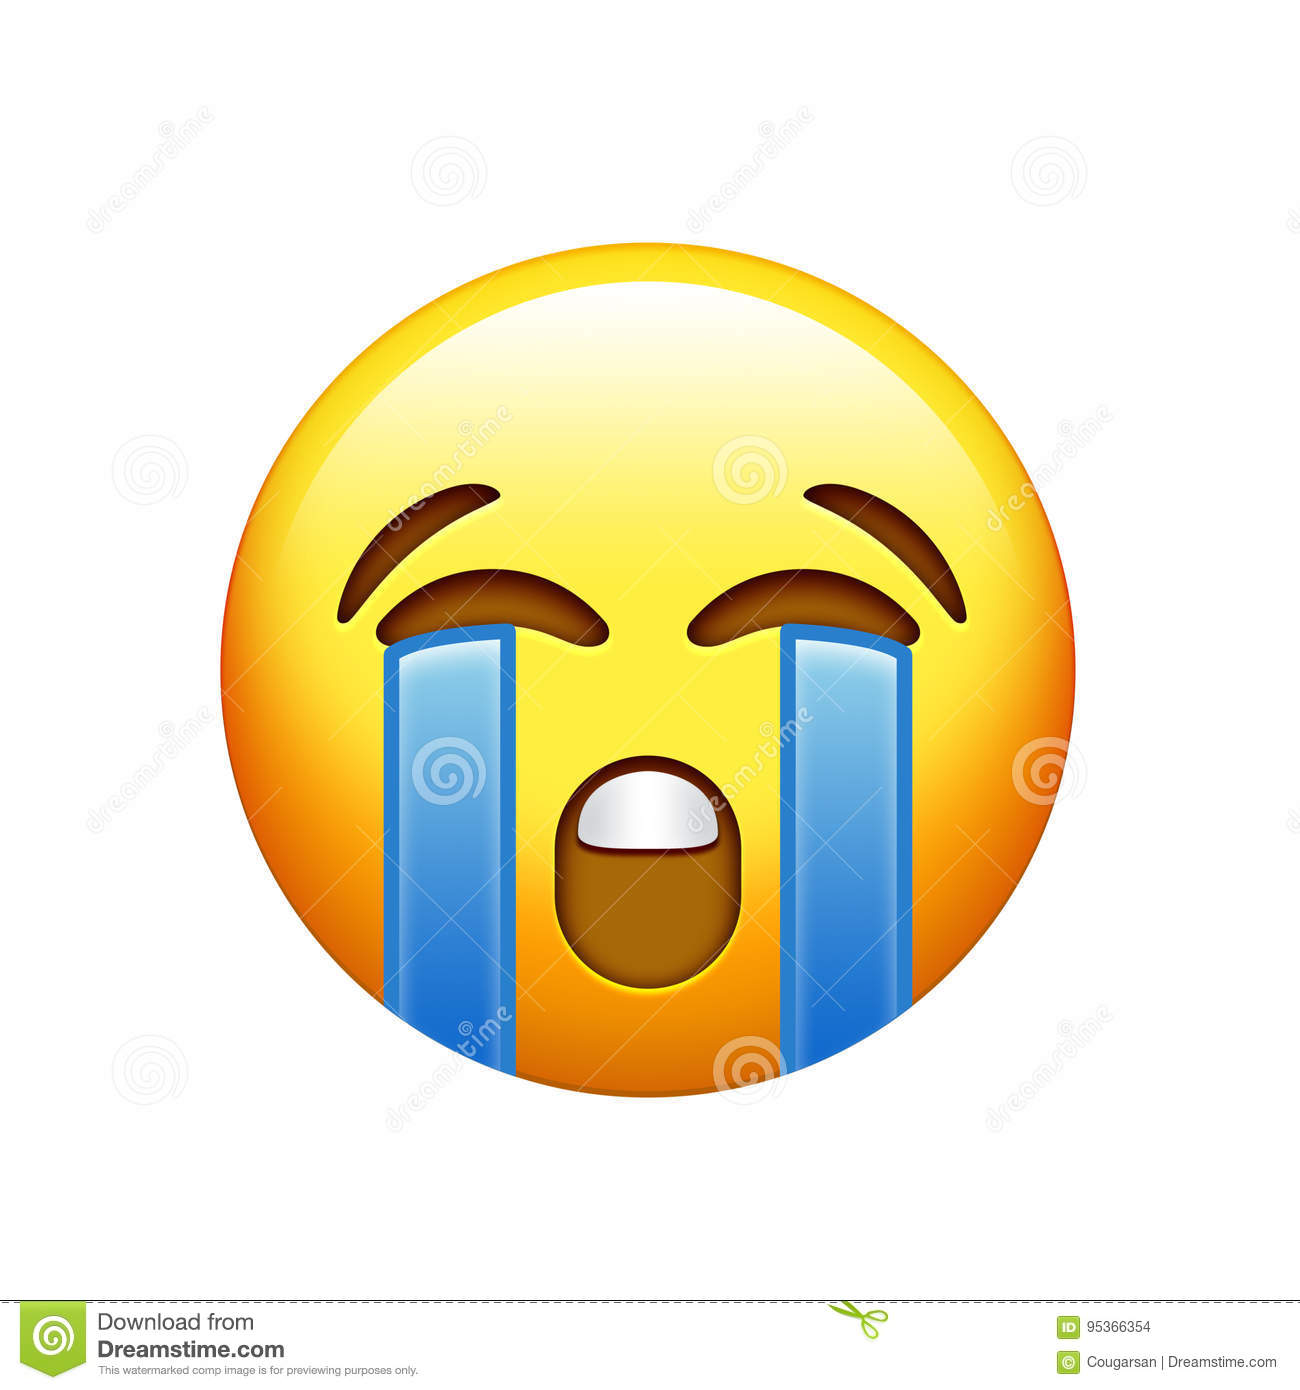 emoji yellow sad face with crying tear icon stock illustration